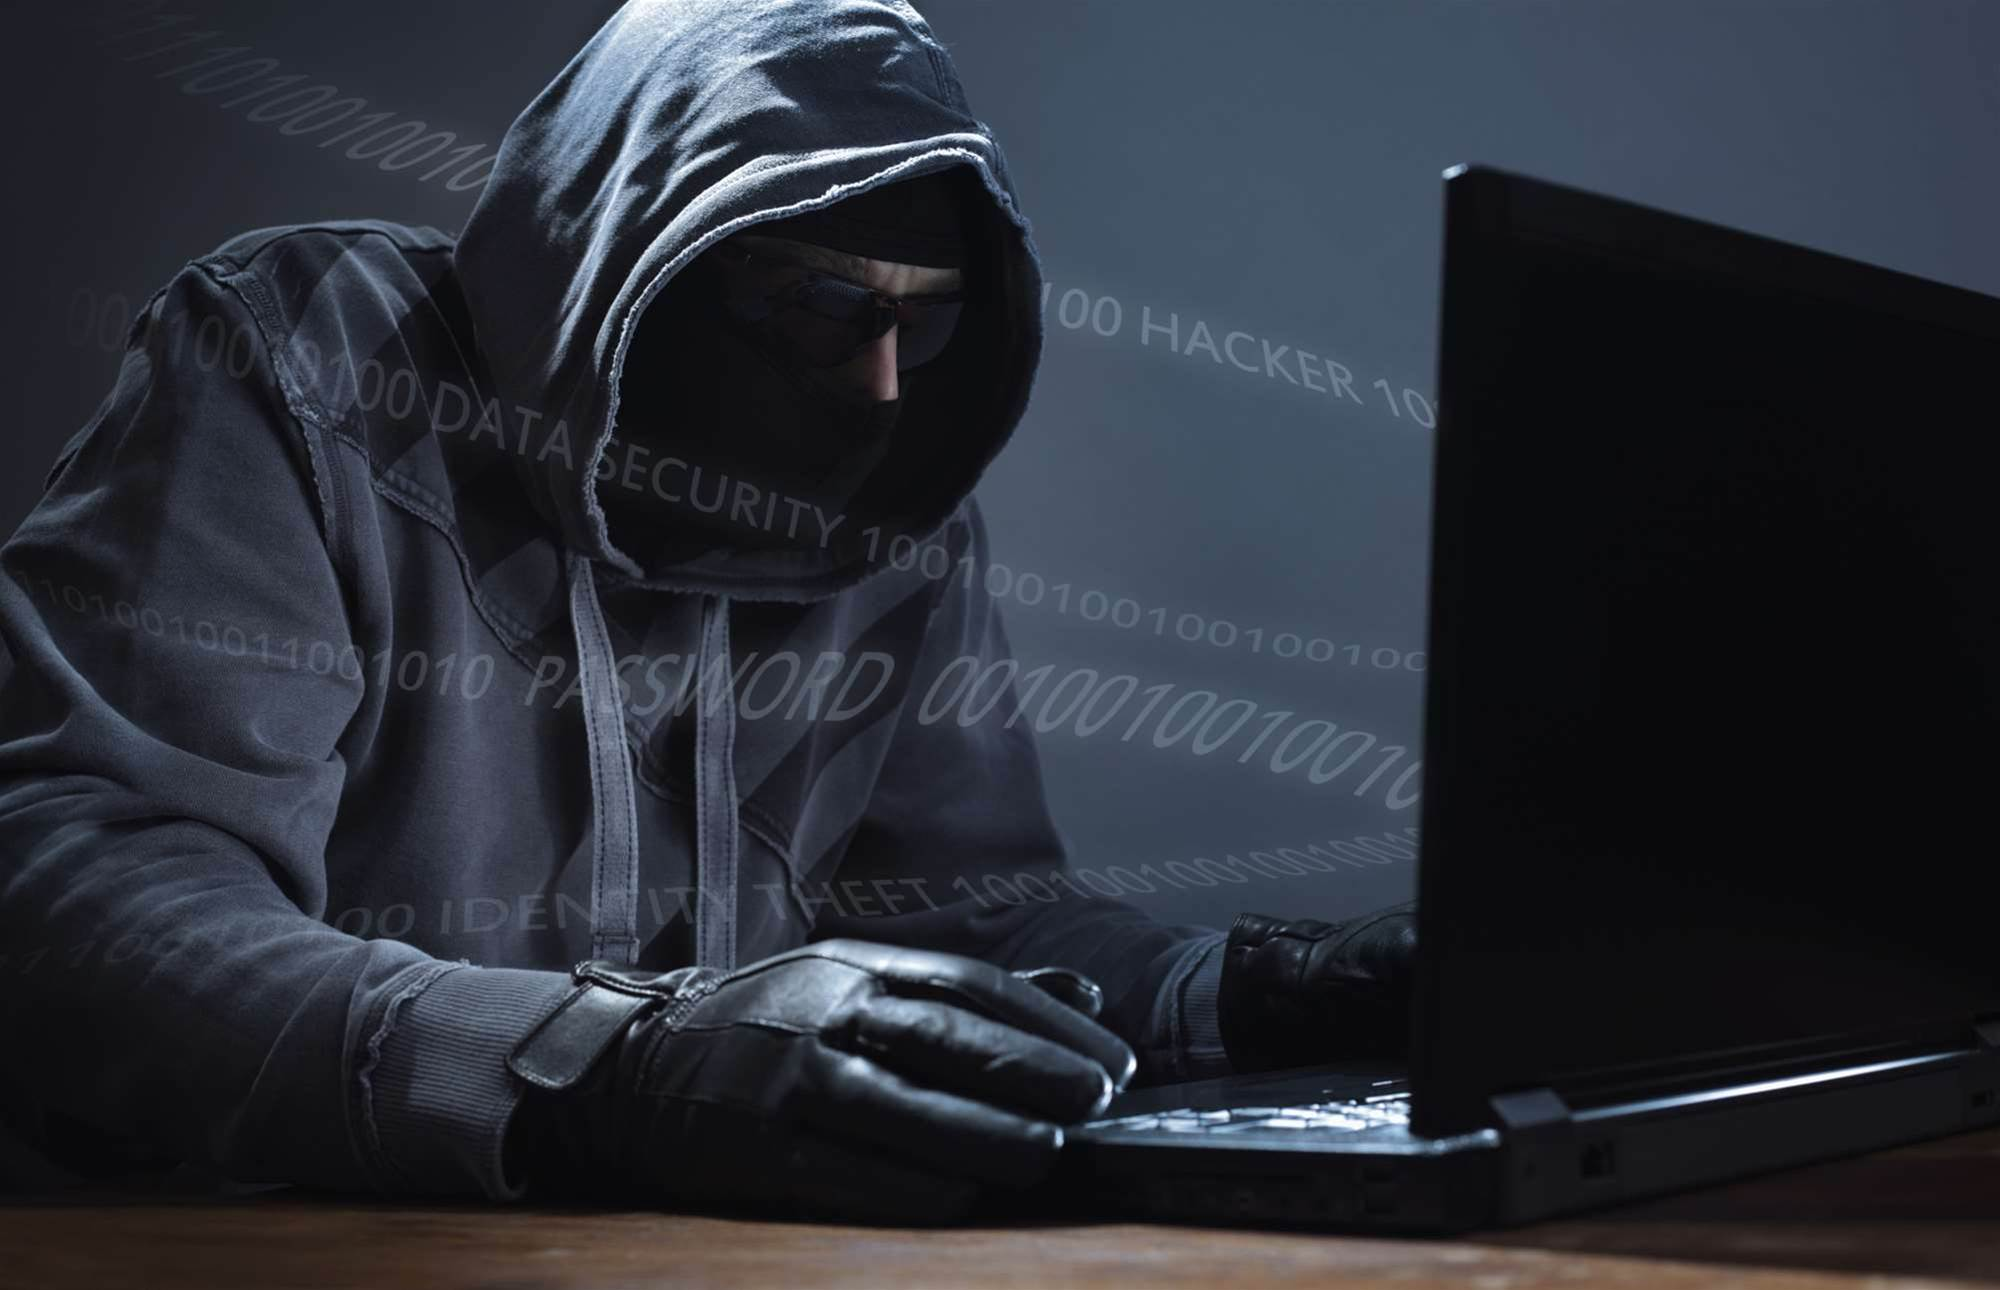 Cyber security incidents continue to rise: ASD